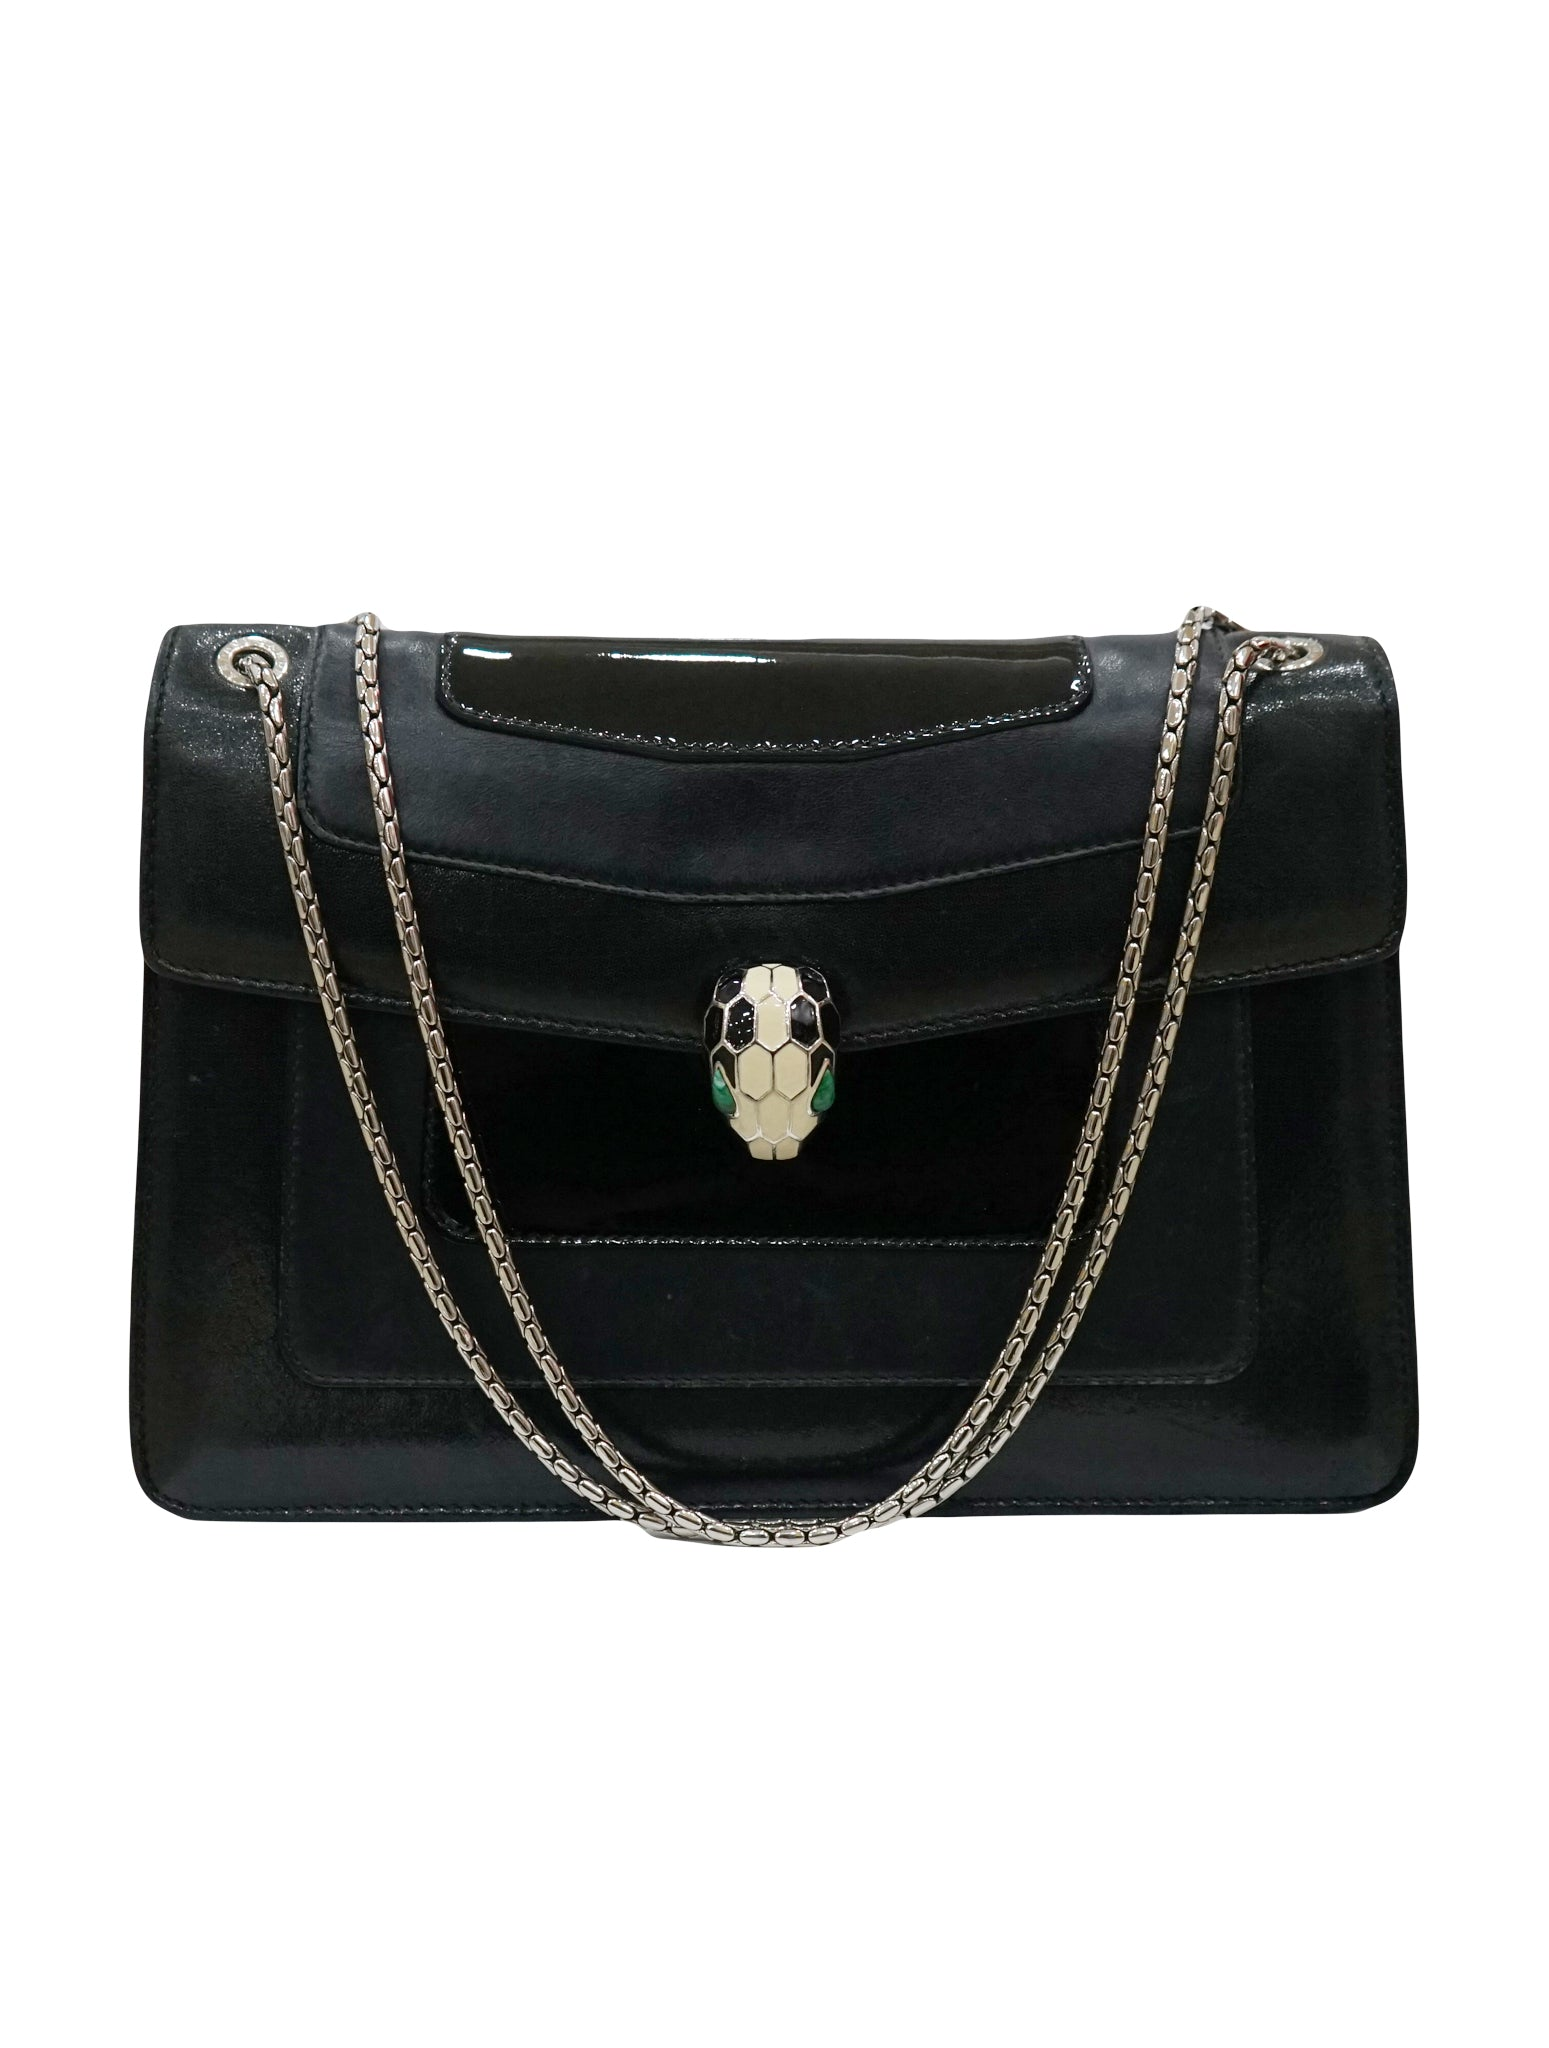 LEATHER PATENT SERPENTI FOREVER BAG